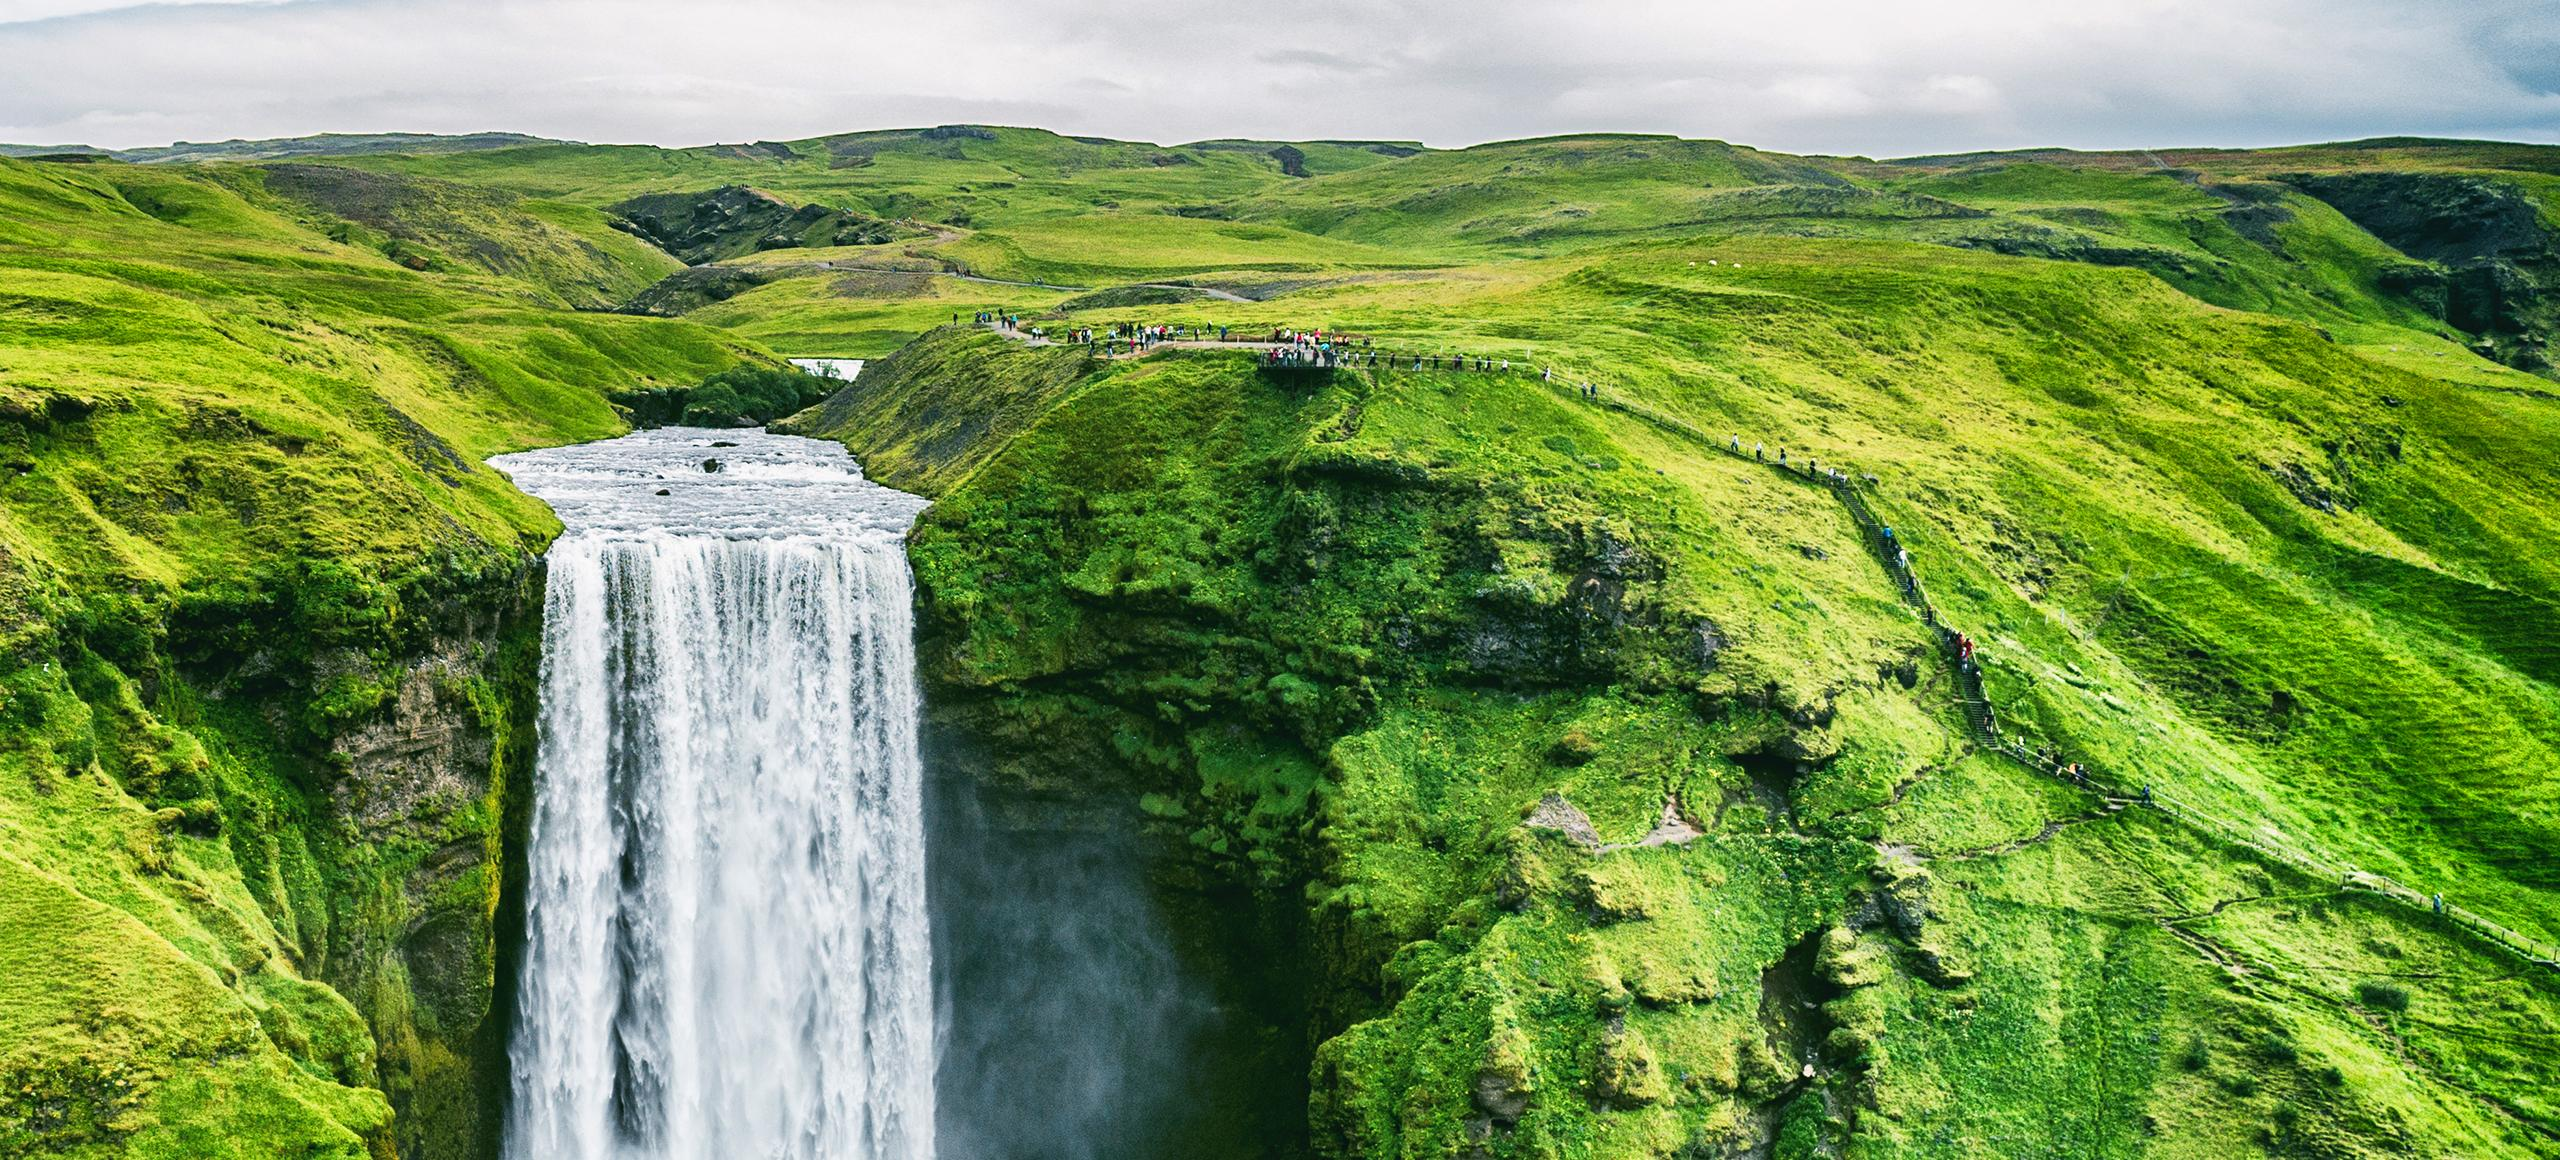 Green landscape with waterfall